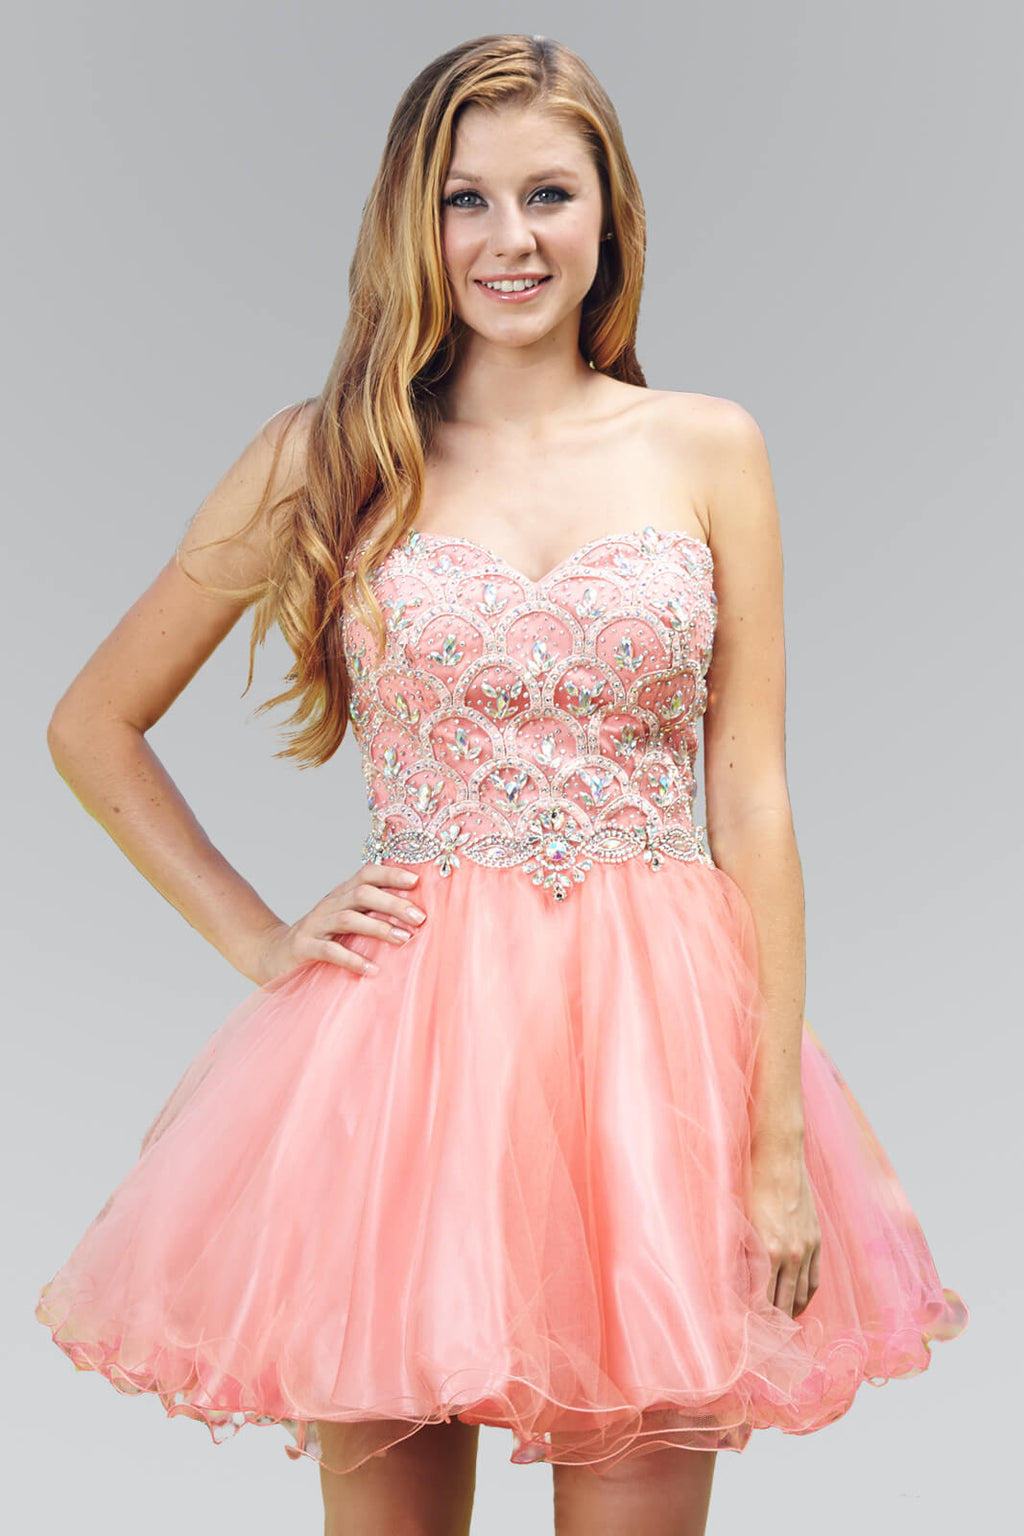 Strapless Short Prom Dress Homecoming - The Dress Outlet Coral